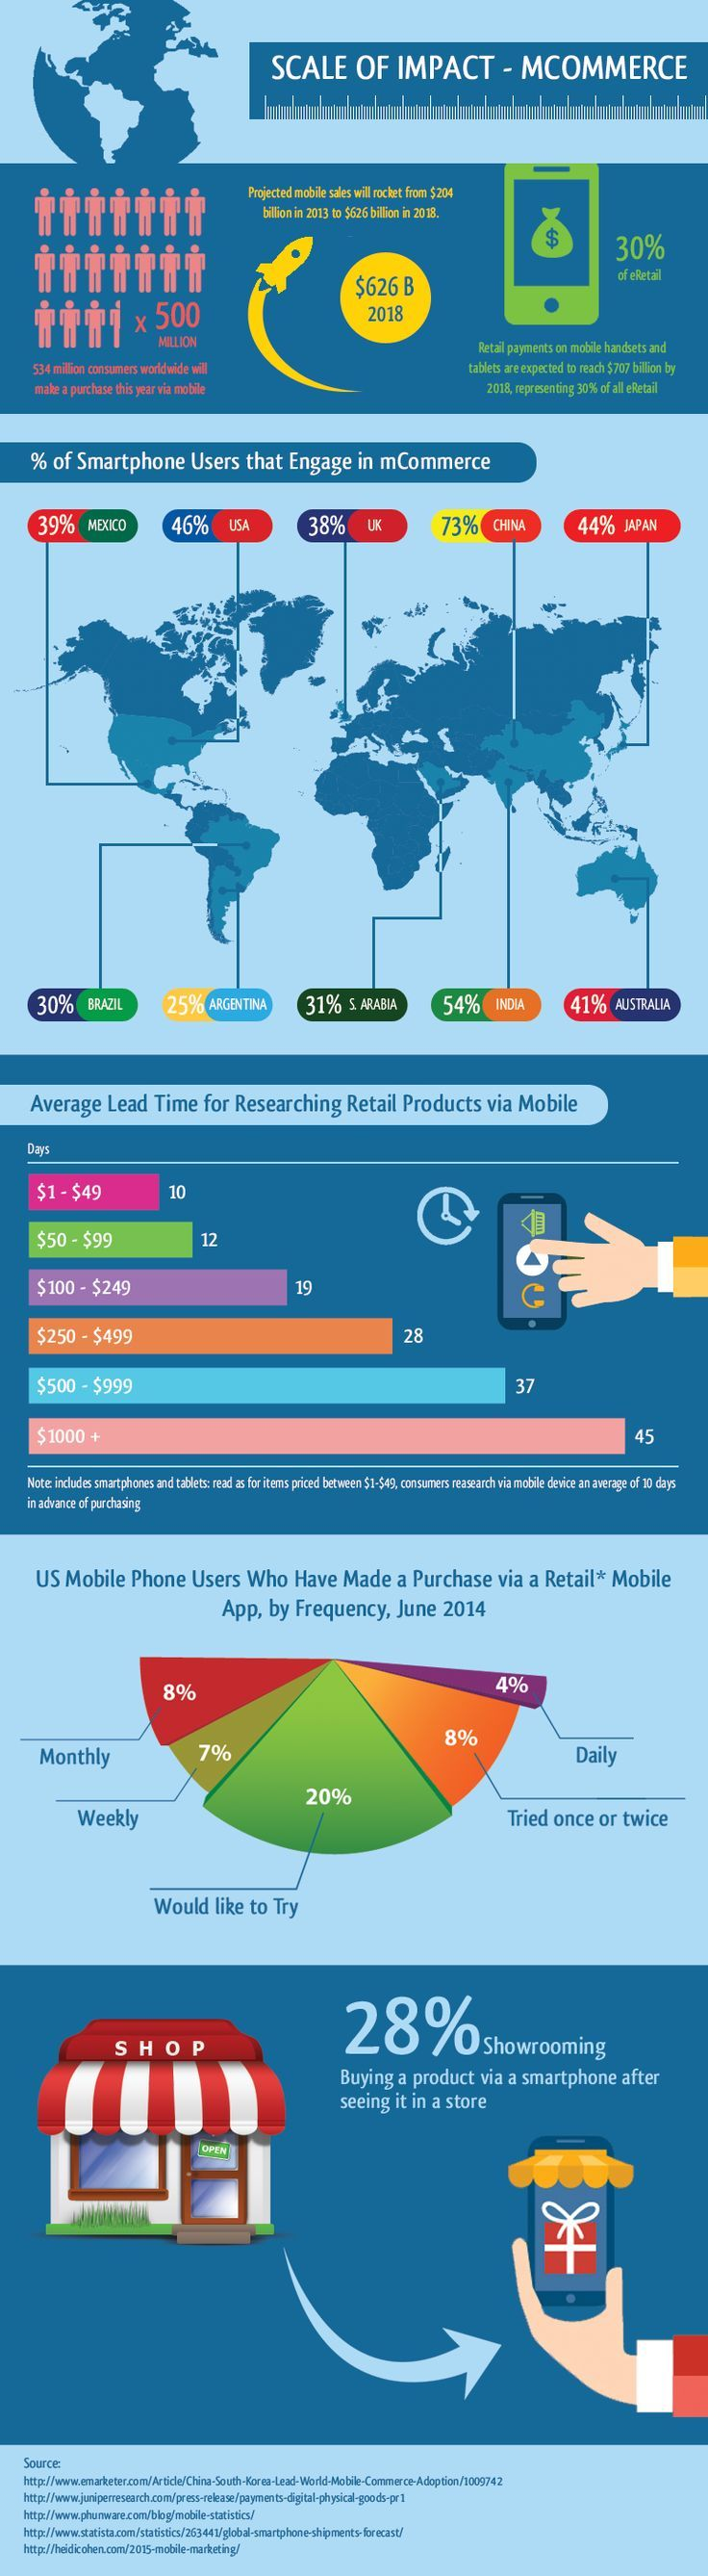 """Infographic 🚀 Scale of Impact 📱 M-commerce. The phrase #MobileCommerce was originally coined in 1997 by Kevin Duffey at the launch of the Global Mobile Commerce Forum, to mean """"the delivery of electronic commerce capabilities directly into the consumer's hand, anywhere, via wireless technology."""" Many choose to think of Mobile Commerce as meaning """"a retail outlet in your customer's pocket.""""  📈 #marketing #MobileMarketing"""